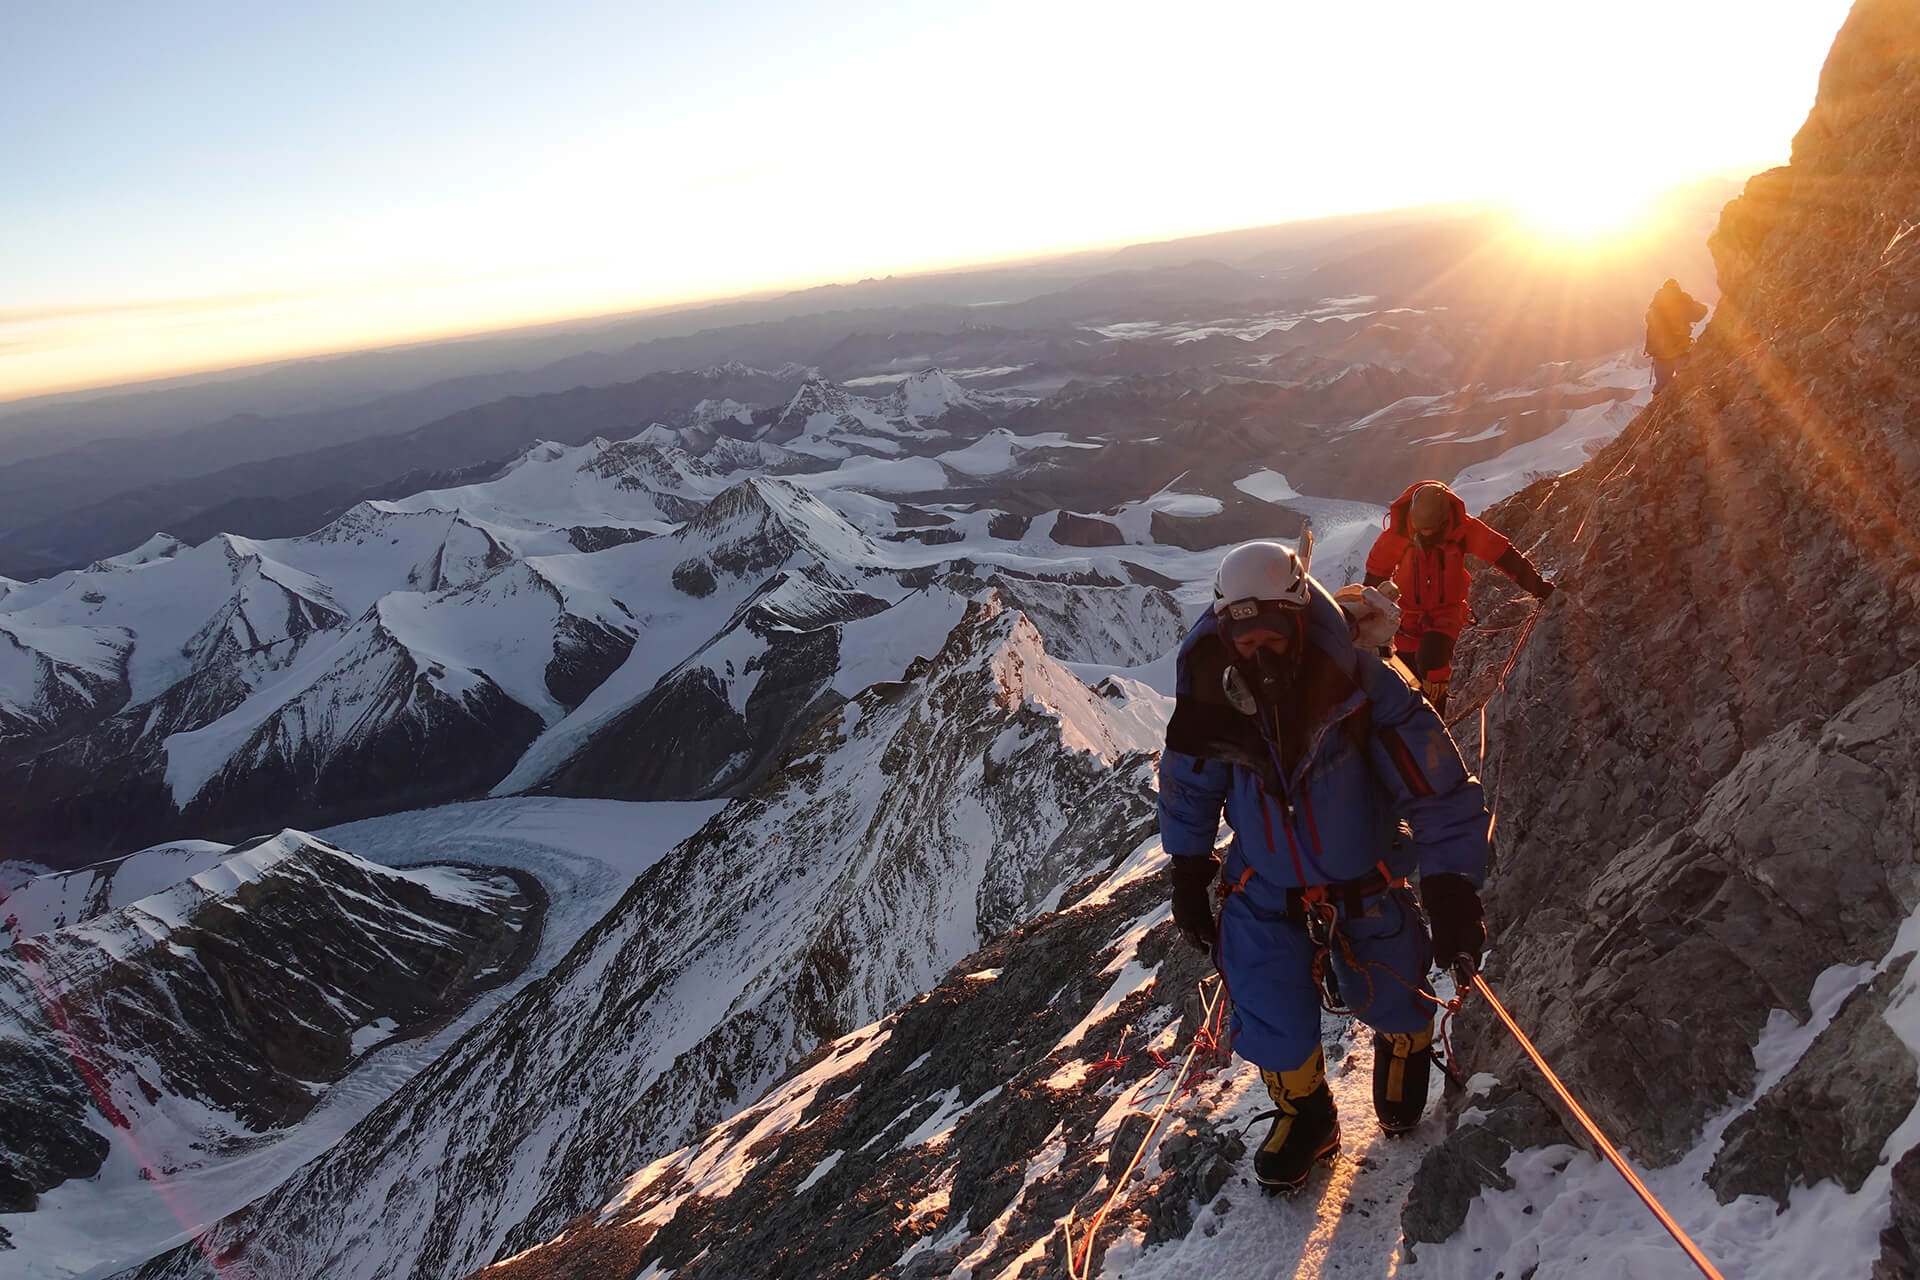 Adrian Ballinger On Climbing Everest Without Oxygen, his Favre-Leuba Bivouac 9000 On The Wrist